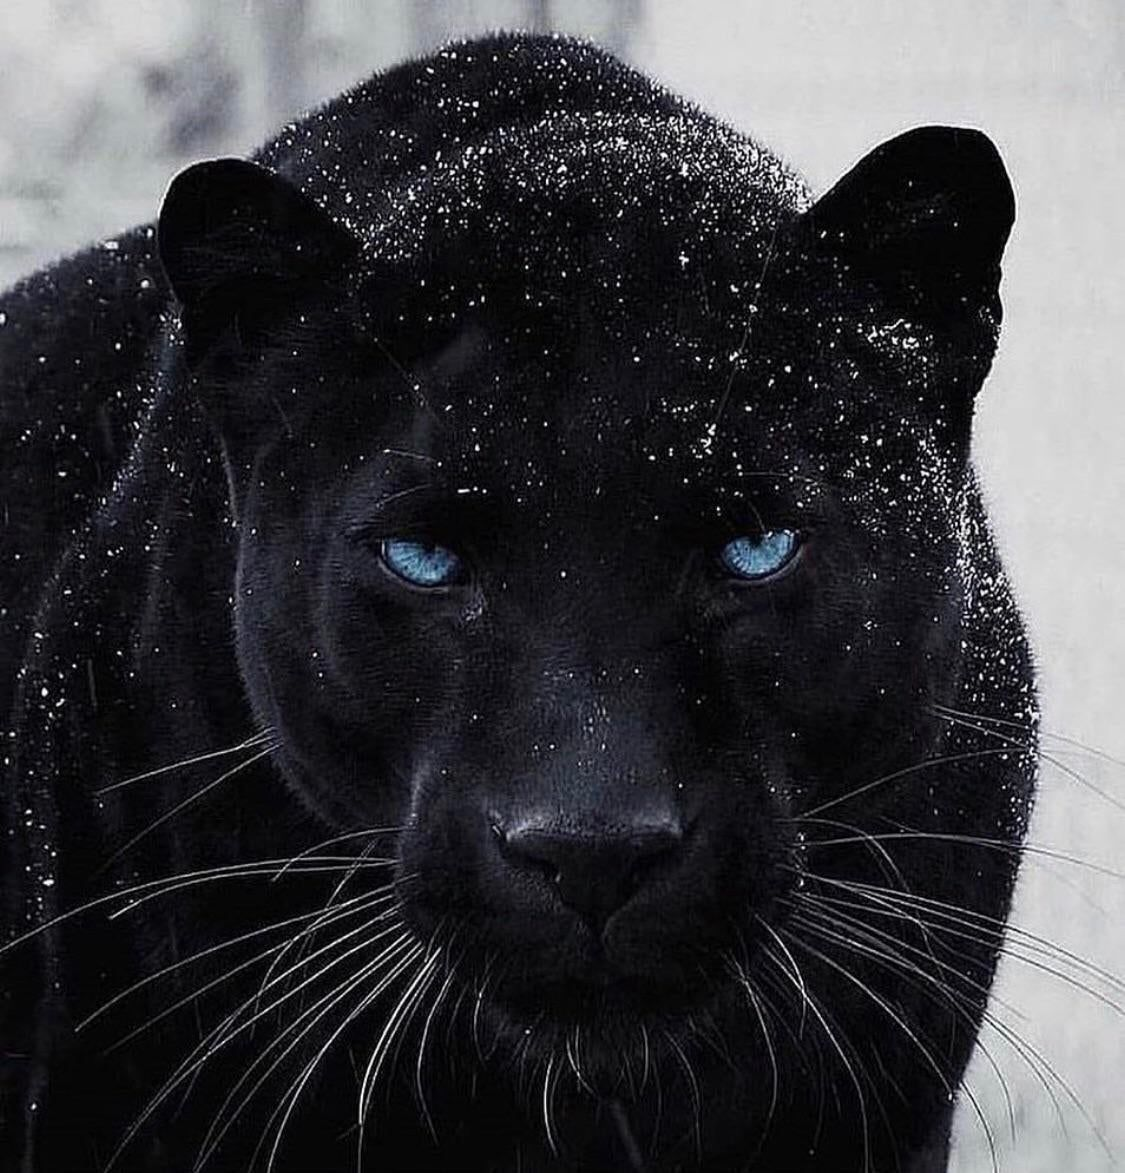 Black Panther In The Snow Natureisfuckinglit Animals Animals Beautiful Majestic Animals